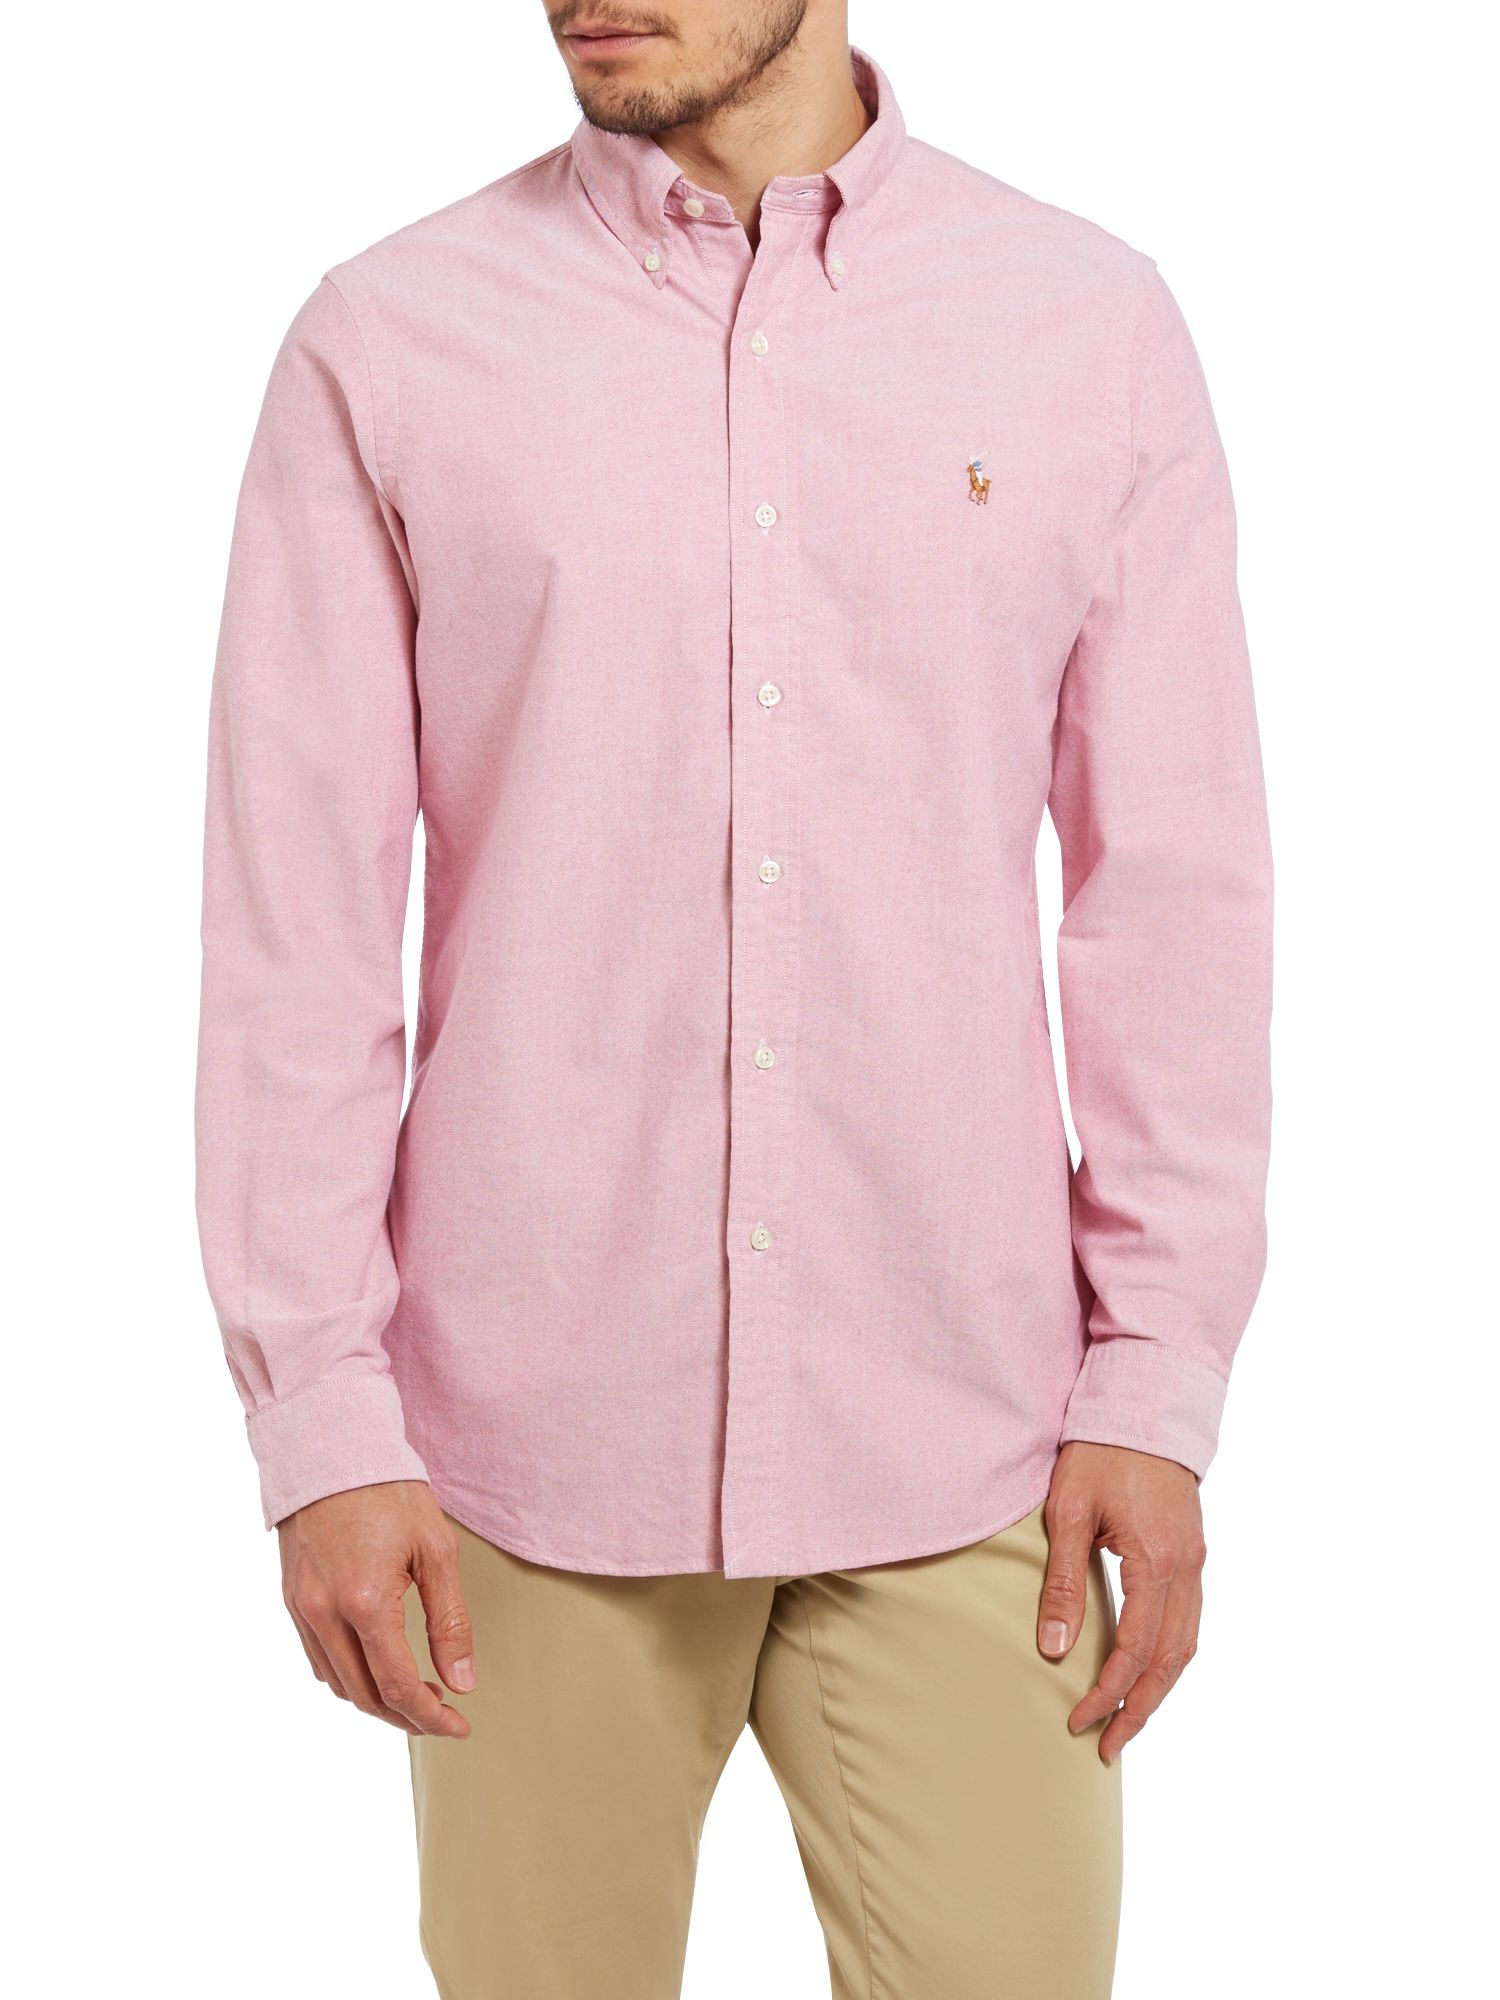 Polo ralph lauren long sleeve custom fit oxford shirt in for Pink oxford shirt men